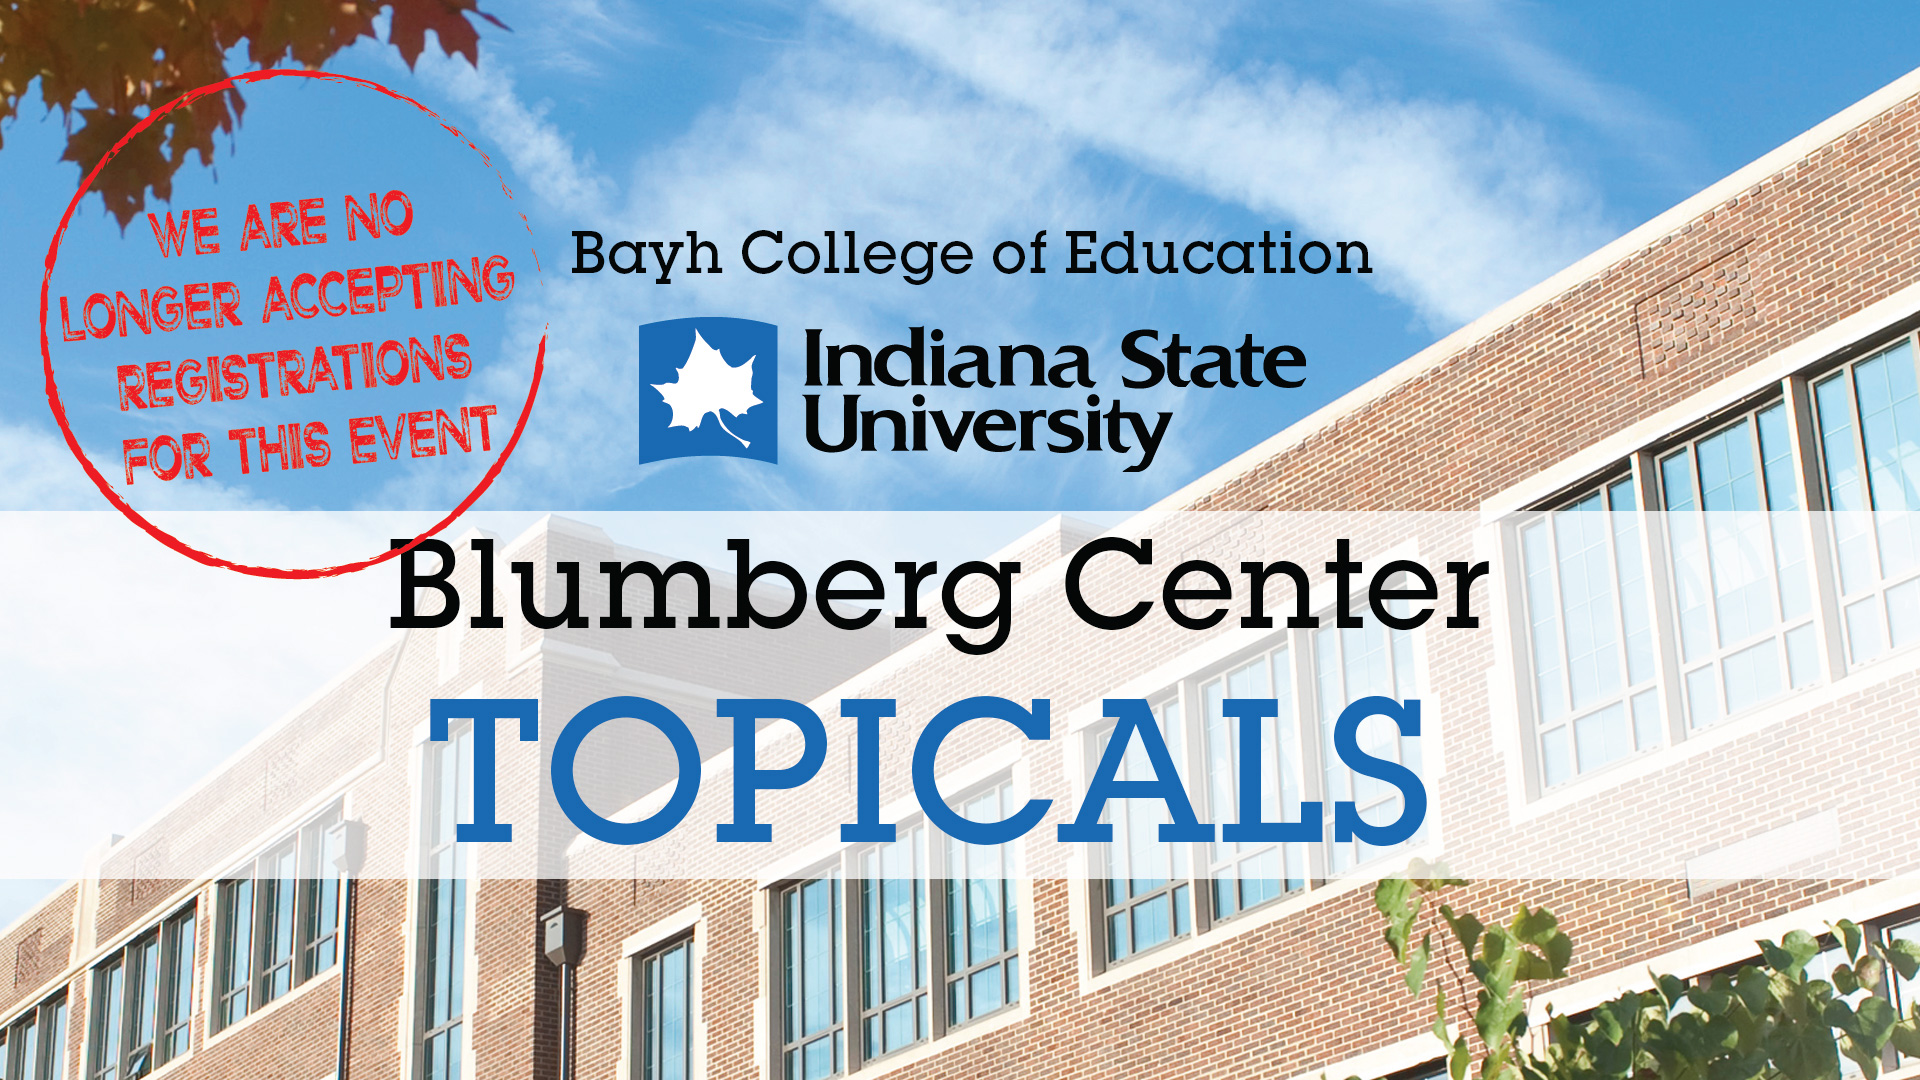 We are no Longer Accepting Blumberg Center Topical Registrations